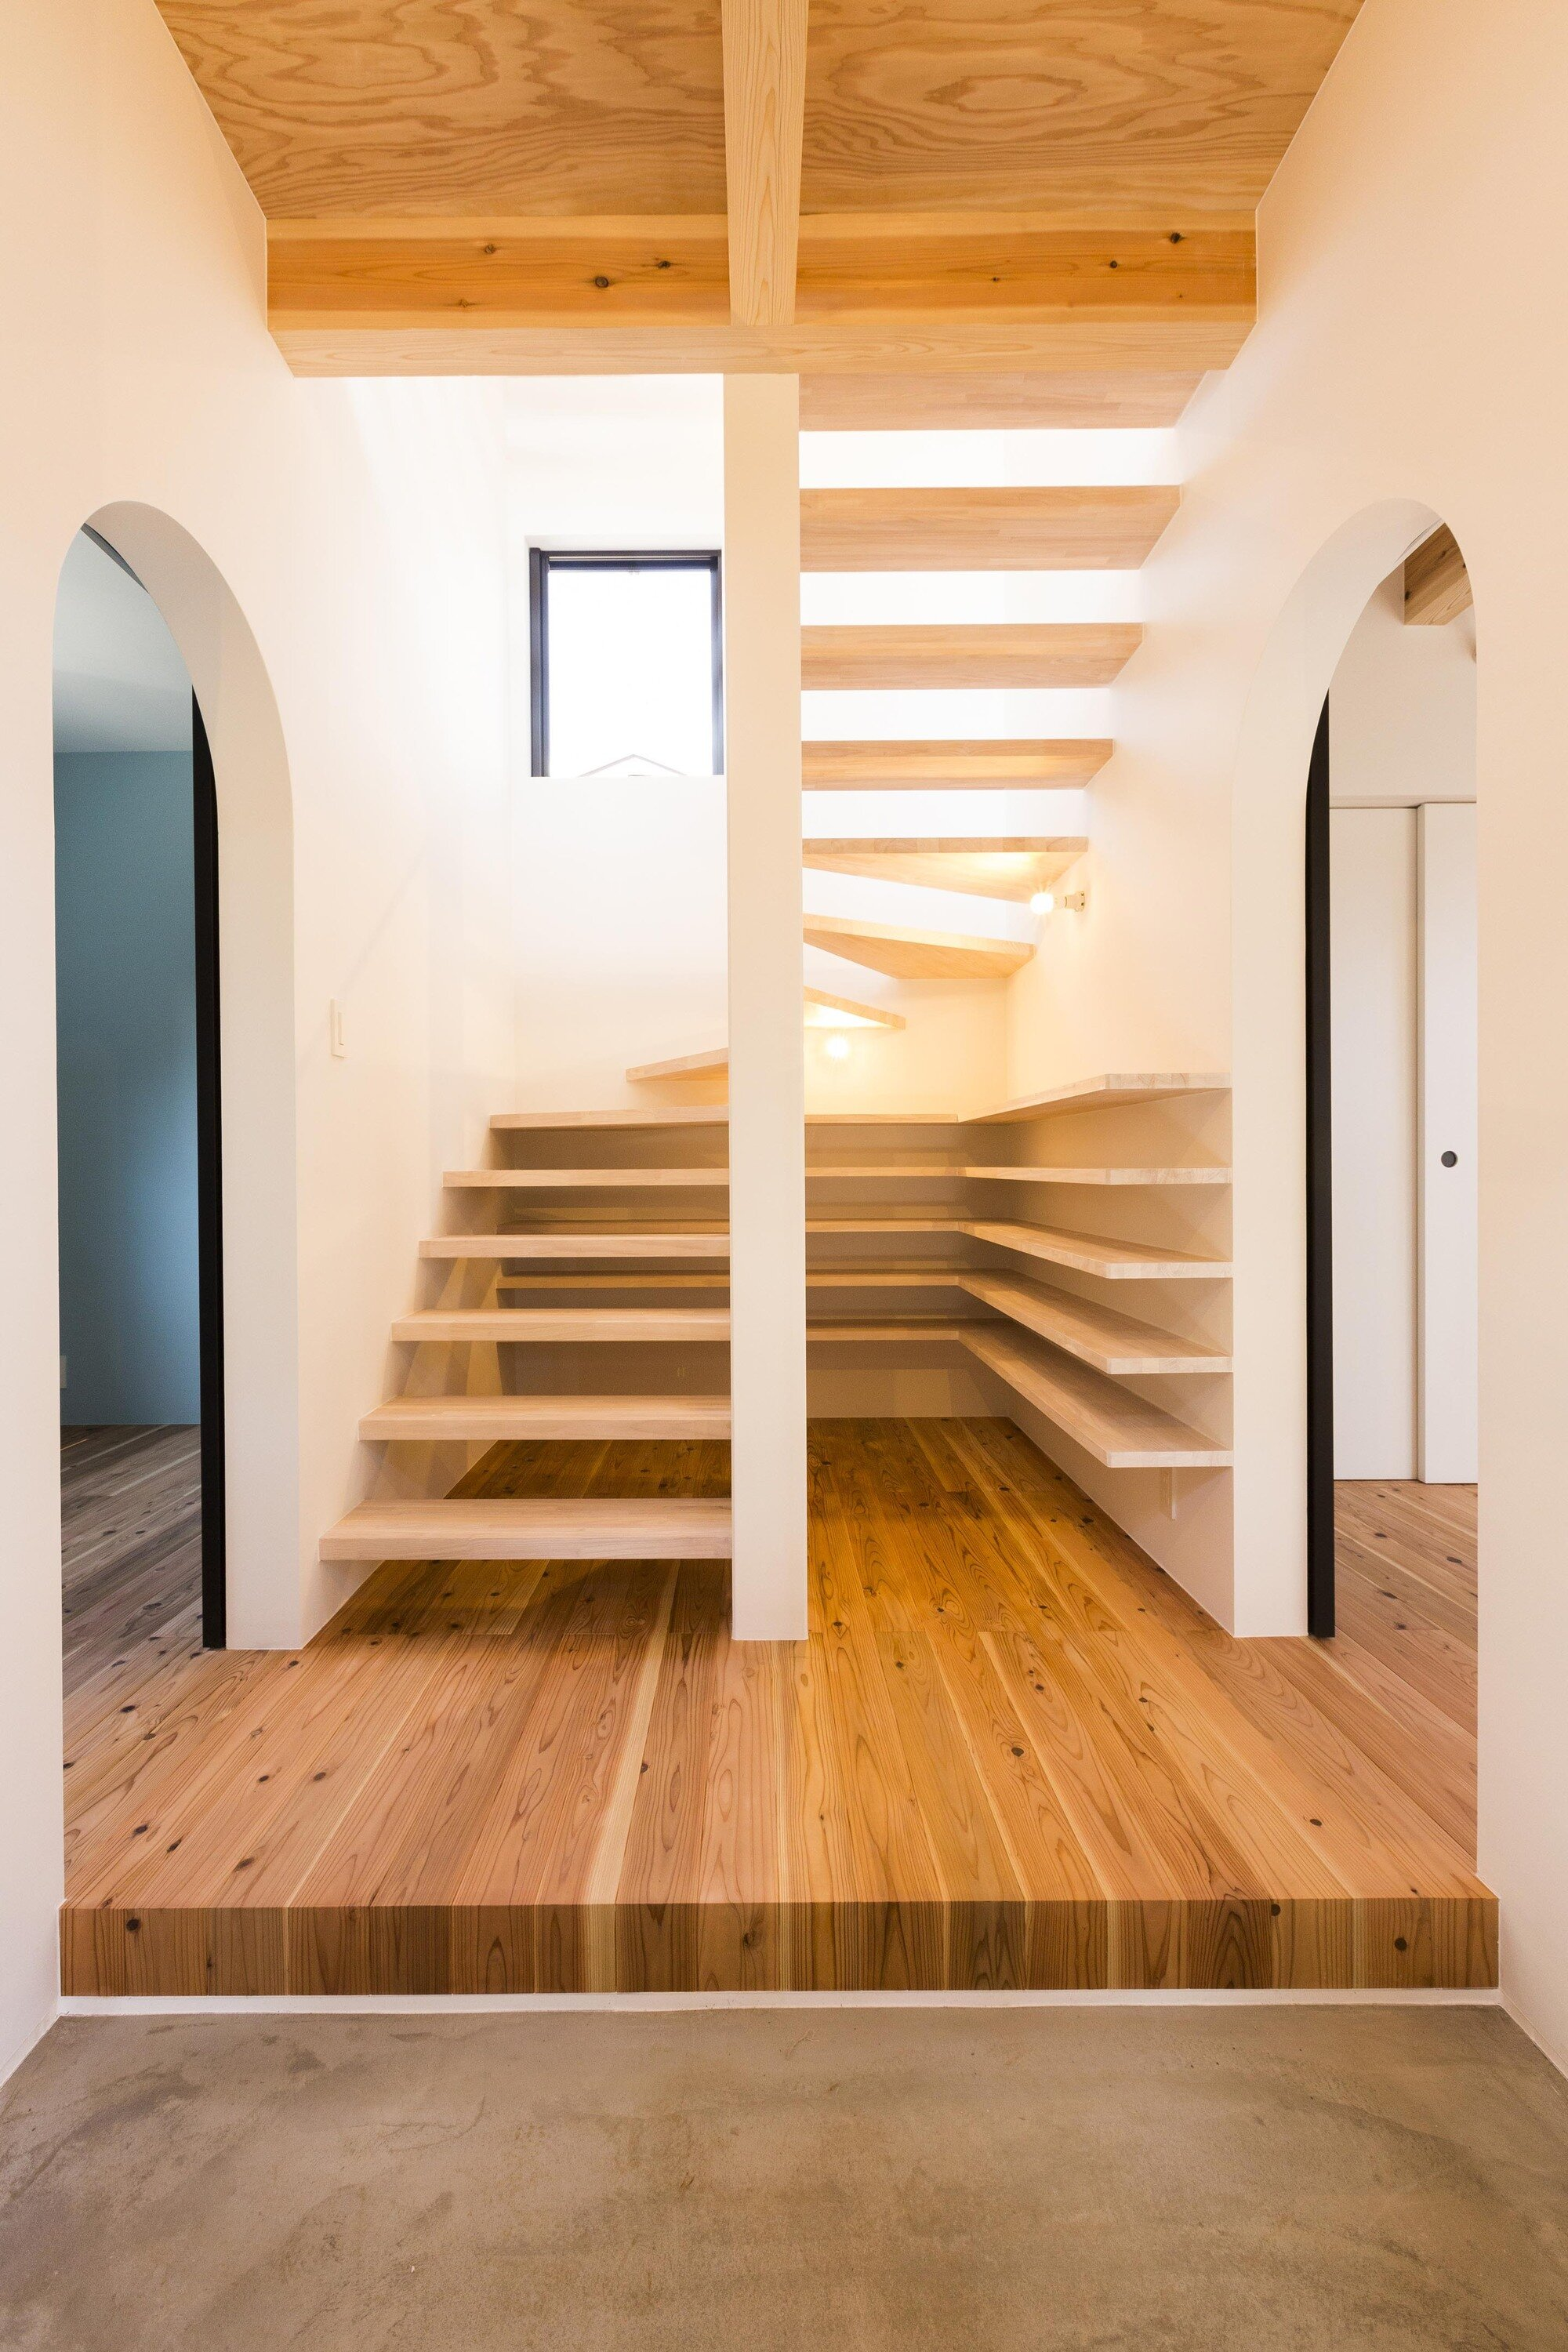 Hibarigaoka S house - Small Japanese House - Kaida Architecture Design Office - Japan - Entry Hall - Humble Homes